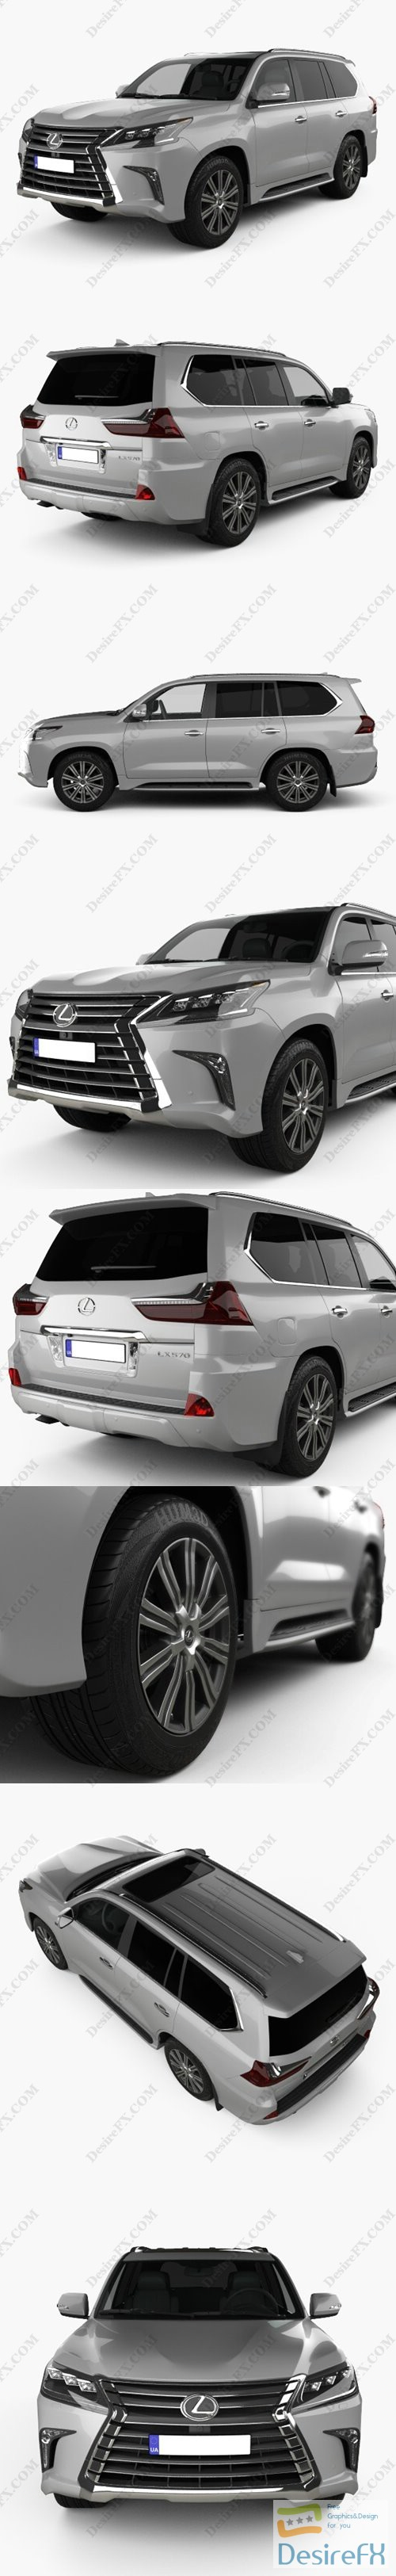 3d-models - Lexus LX570 2016 3D Model